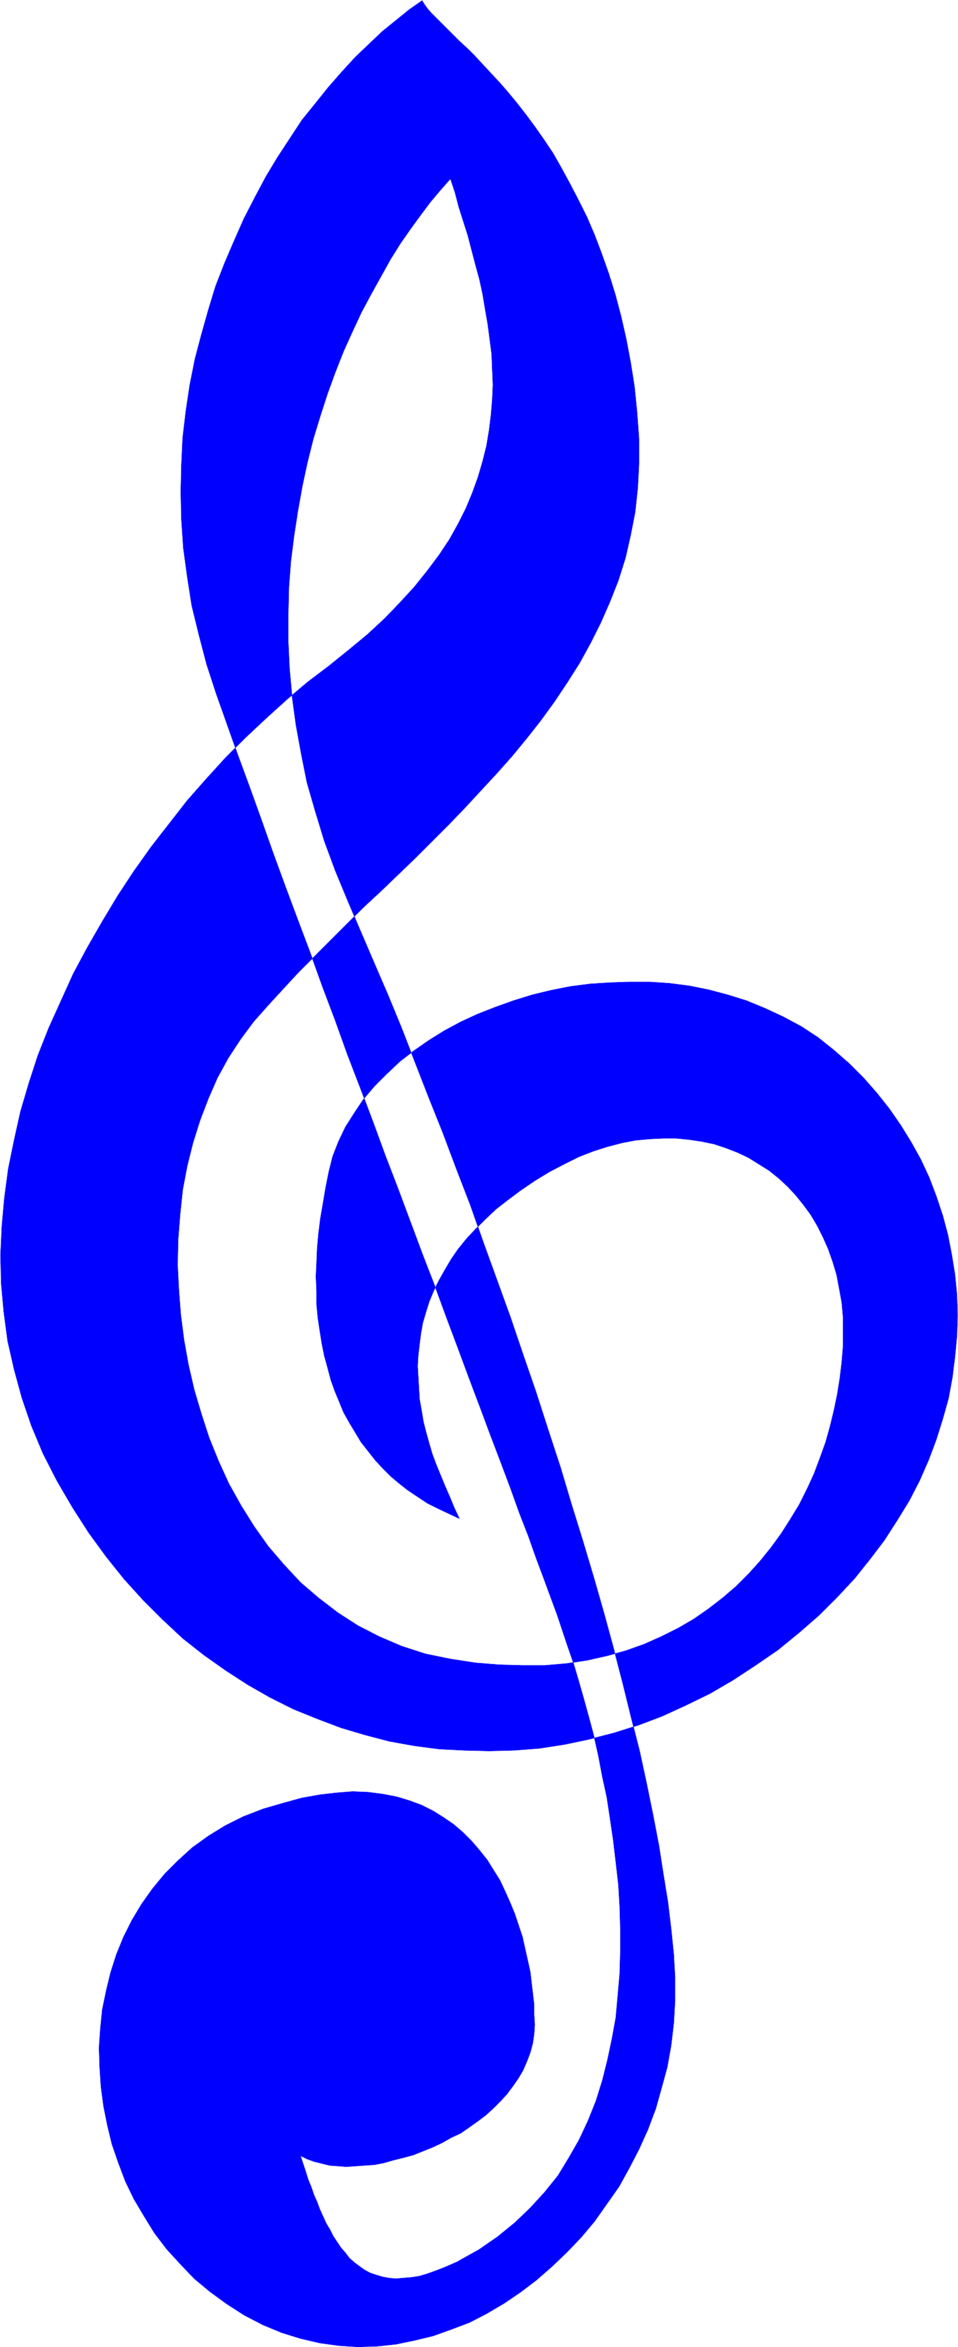 Illustration of a blue treble clef music symbol : Free Stock Photo